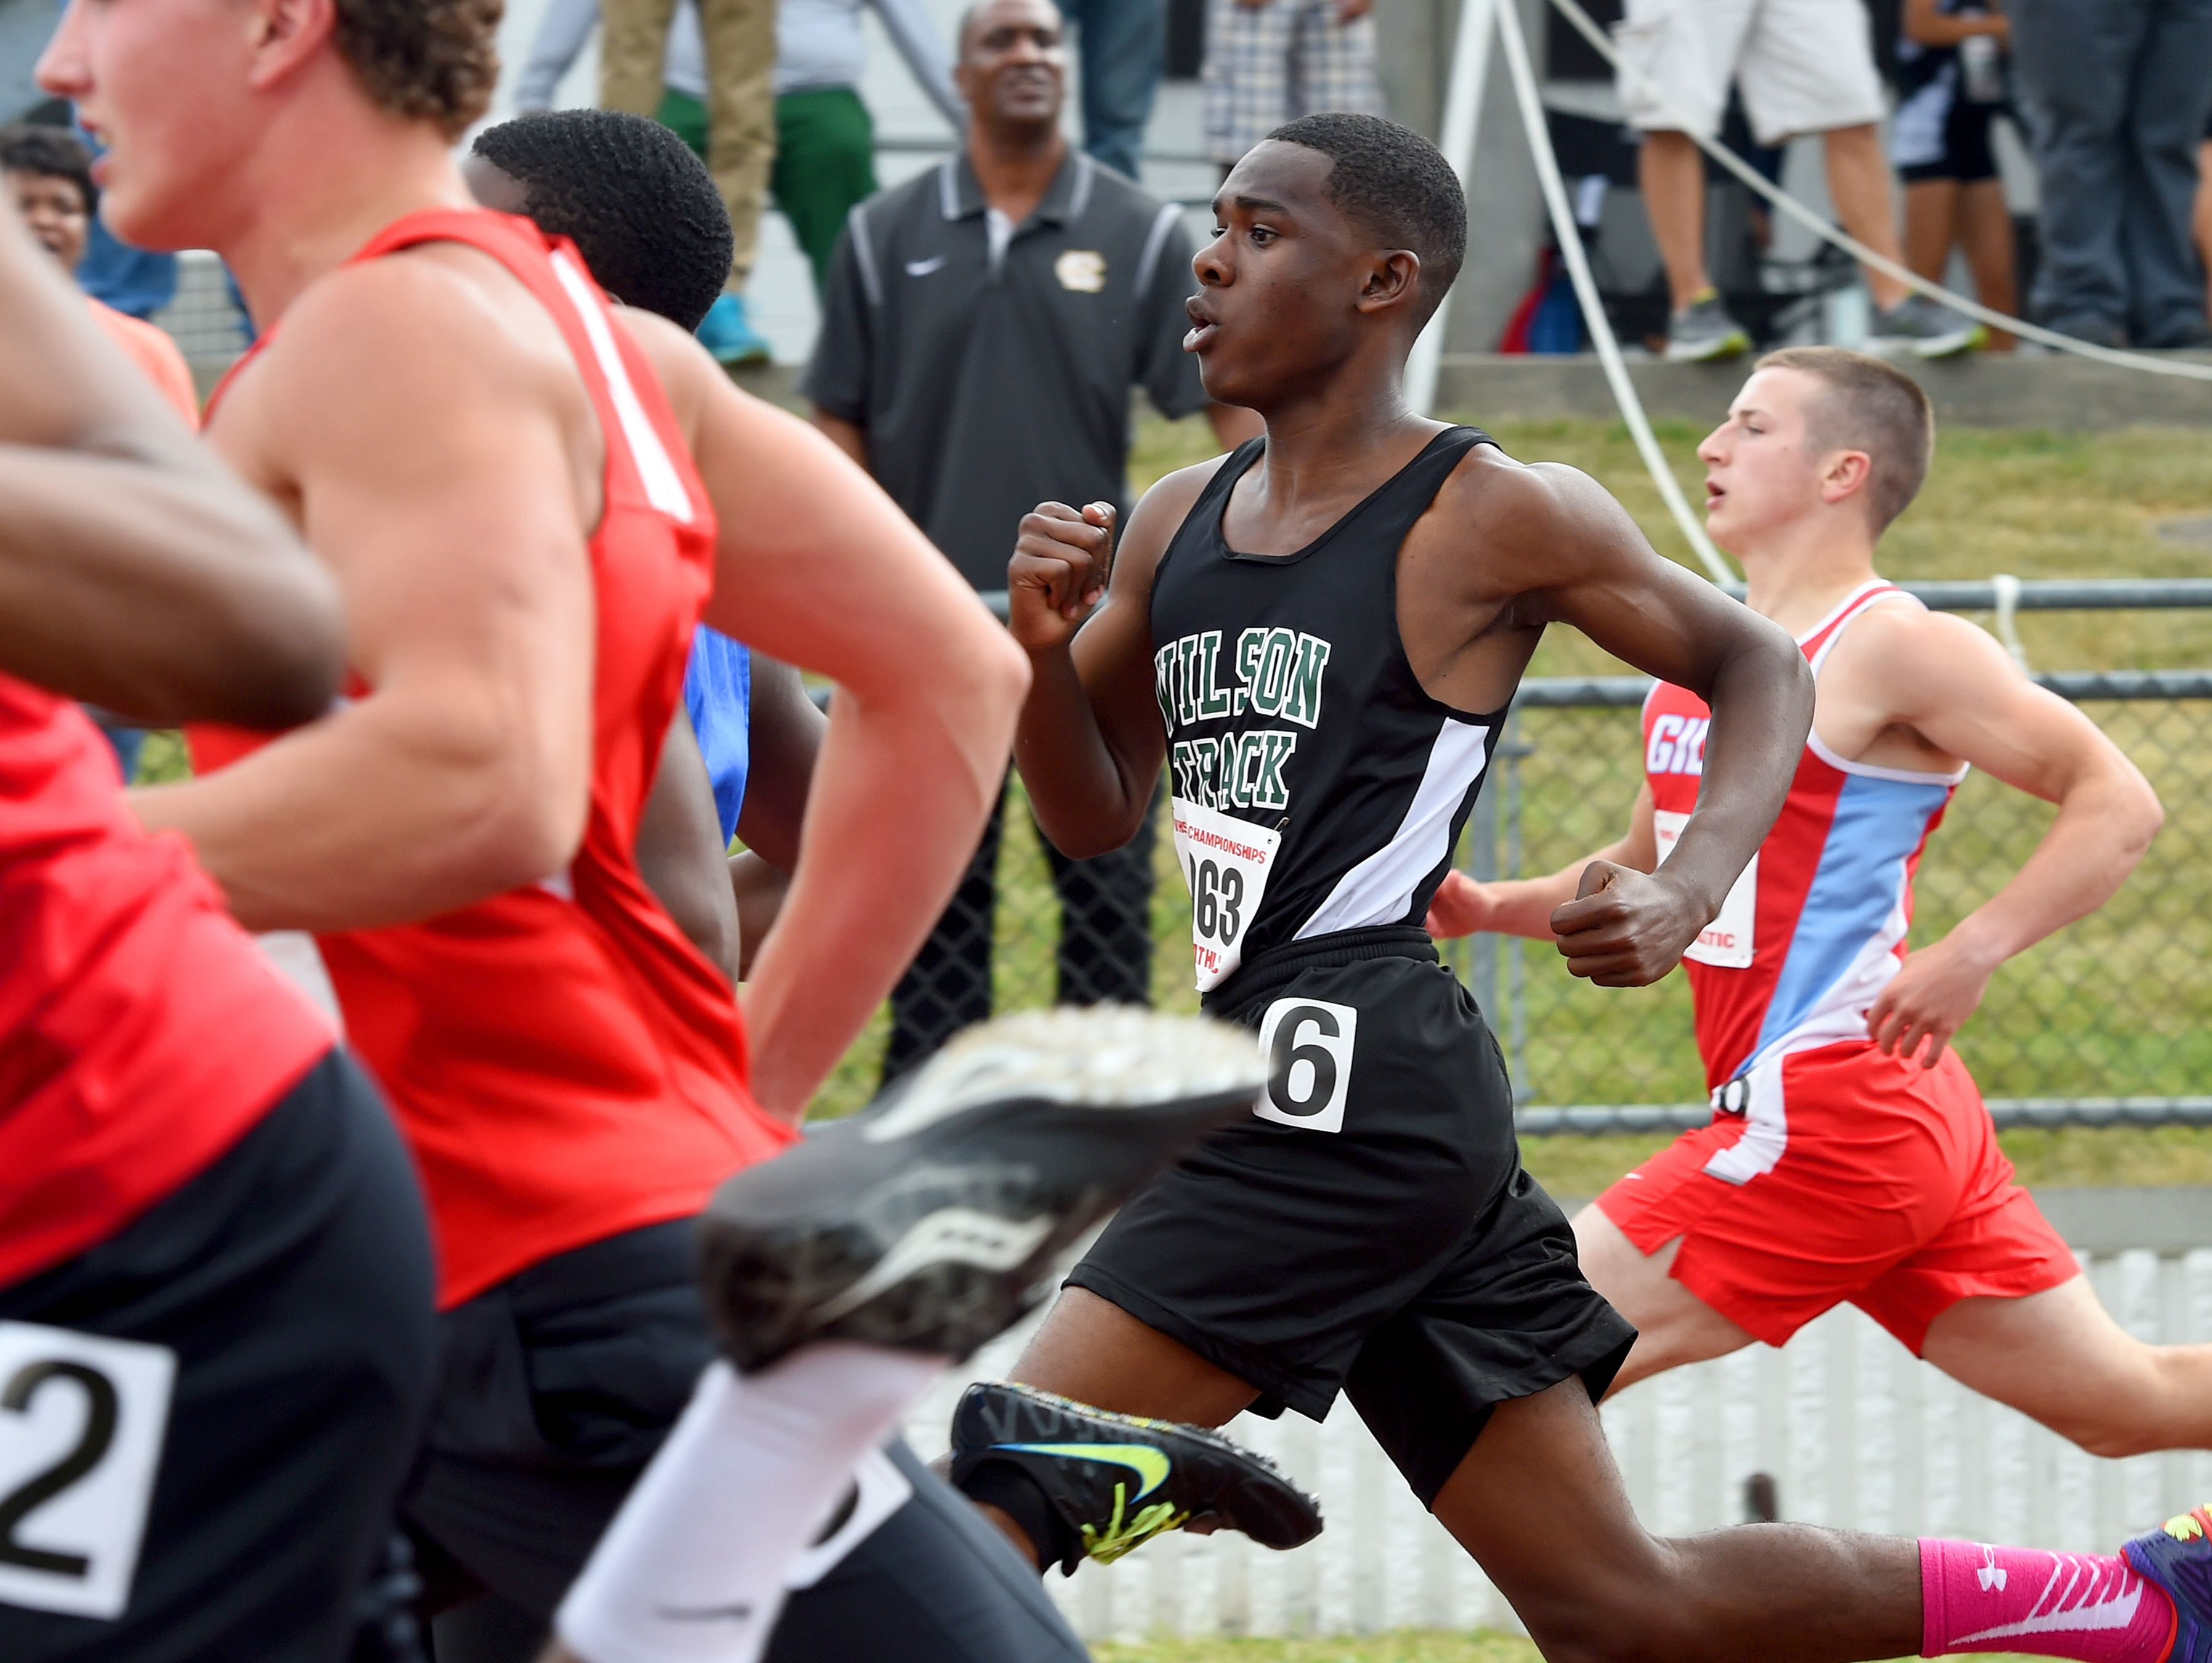 Wilson Memorial's Julian Edwards competes in the boys 100 meter dash during the first day of the state 2A track championships in Radford on Friday, June 5, 2015.